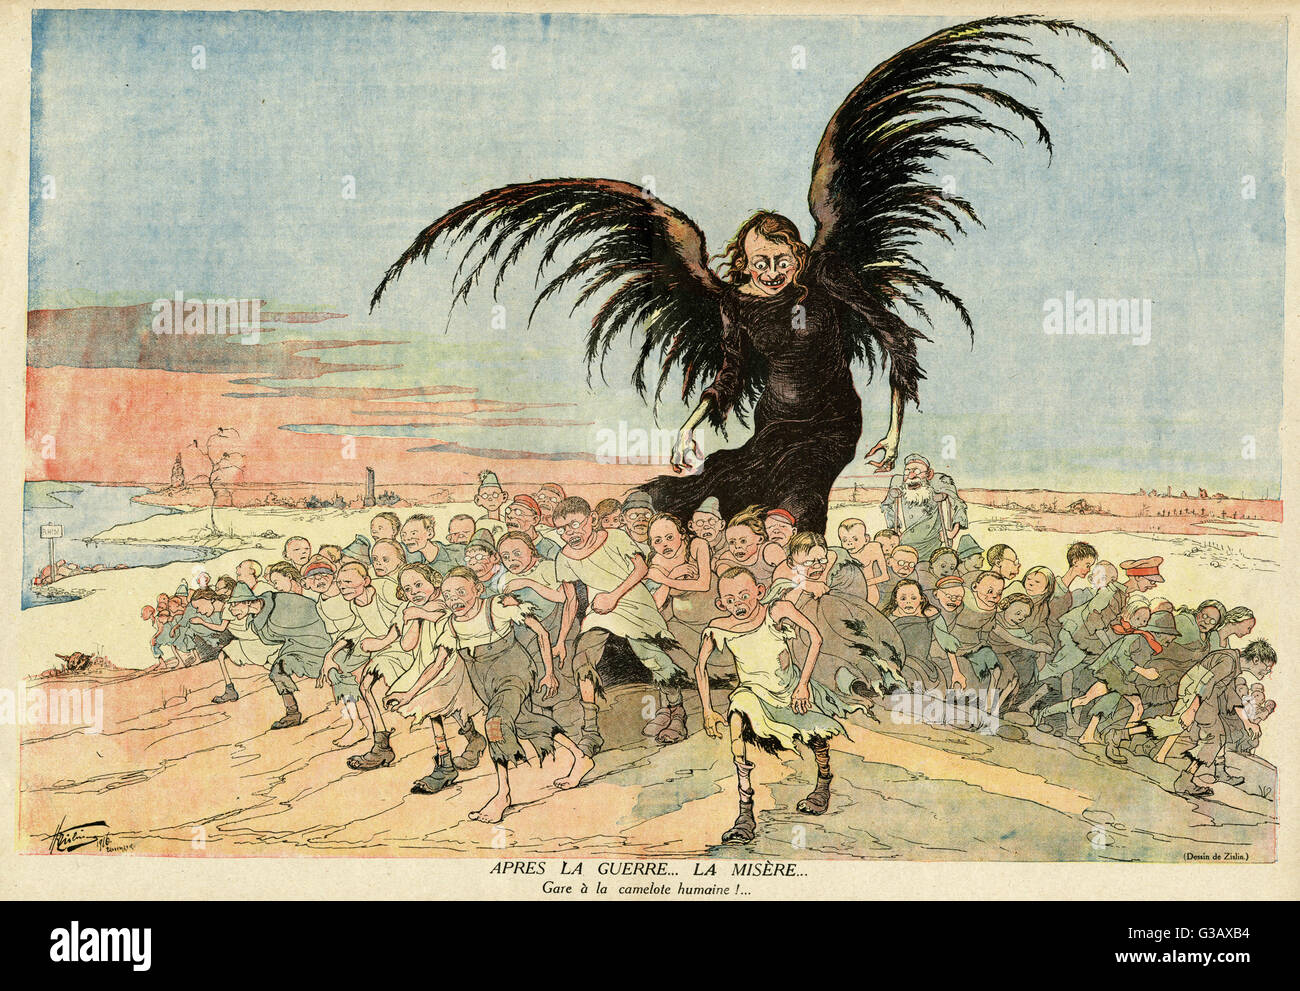 Cartoon, After War, Misery.  Showing a large, vulture-like figure towering over a group of ragged adults and children. - Stock Image